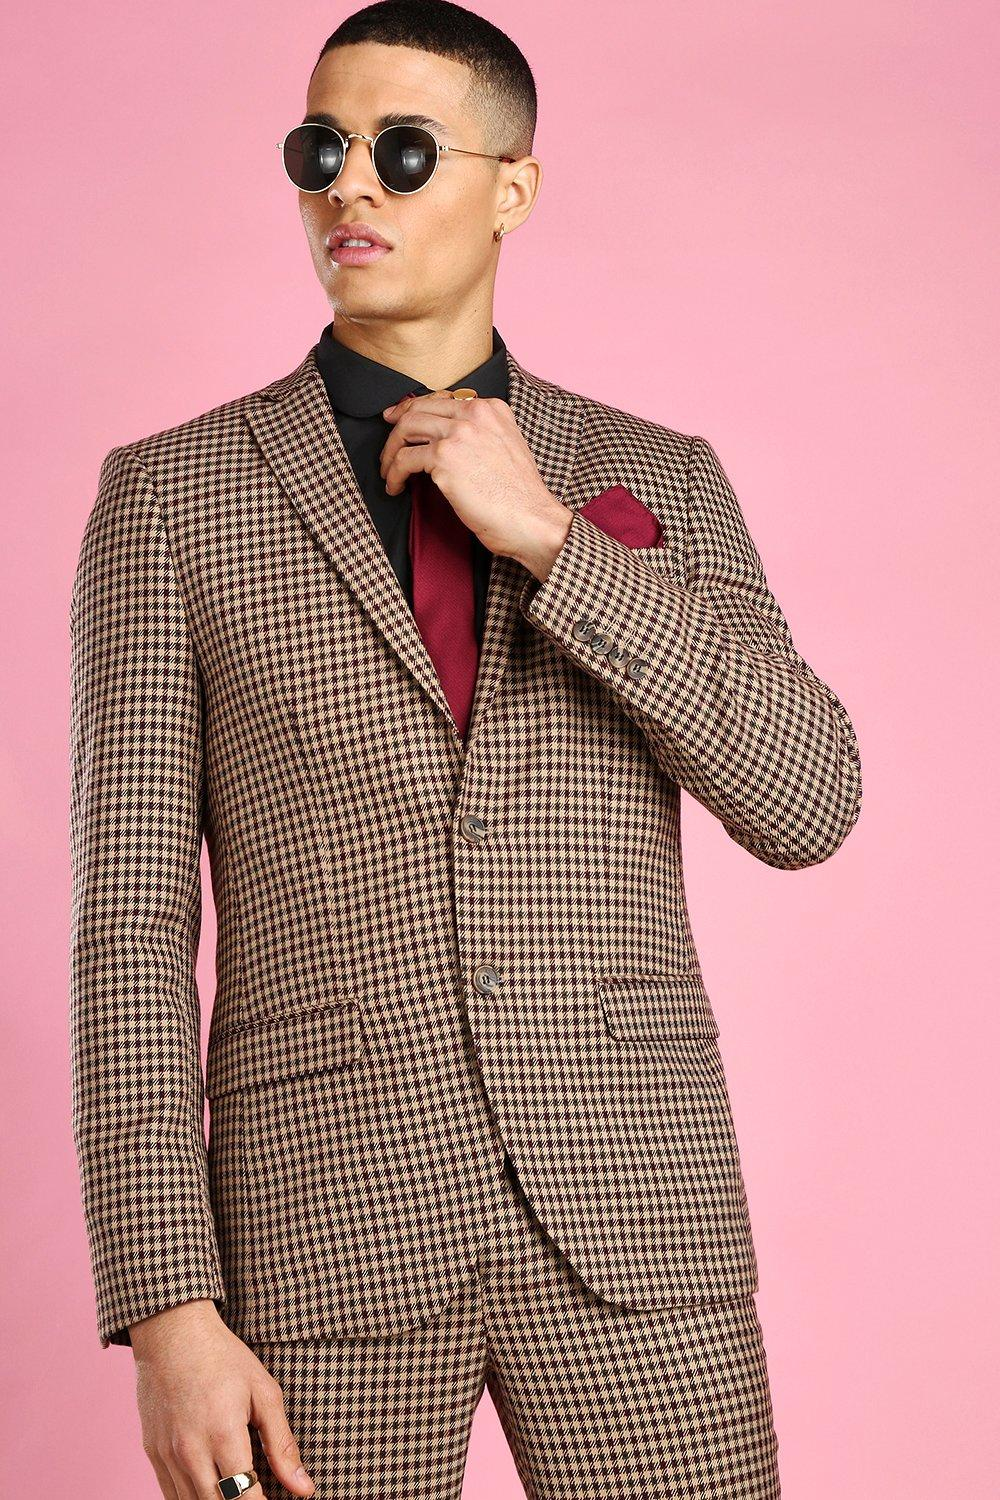 60s 70s Men's Clothing UK | Shirts, Trousers, Shoes Mens Skinny Heritage Dogtooth Flannel Suit Jacket - Beige $30.00 AT vintagedancer.com